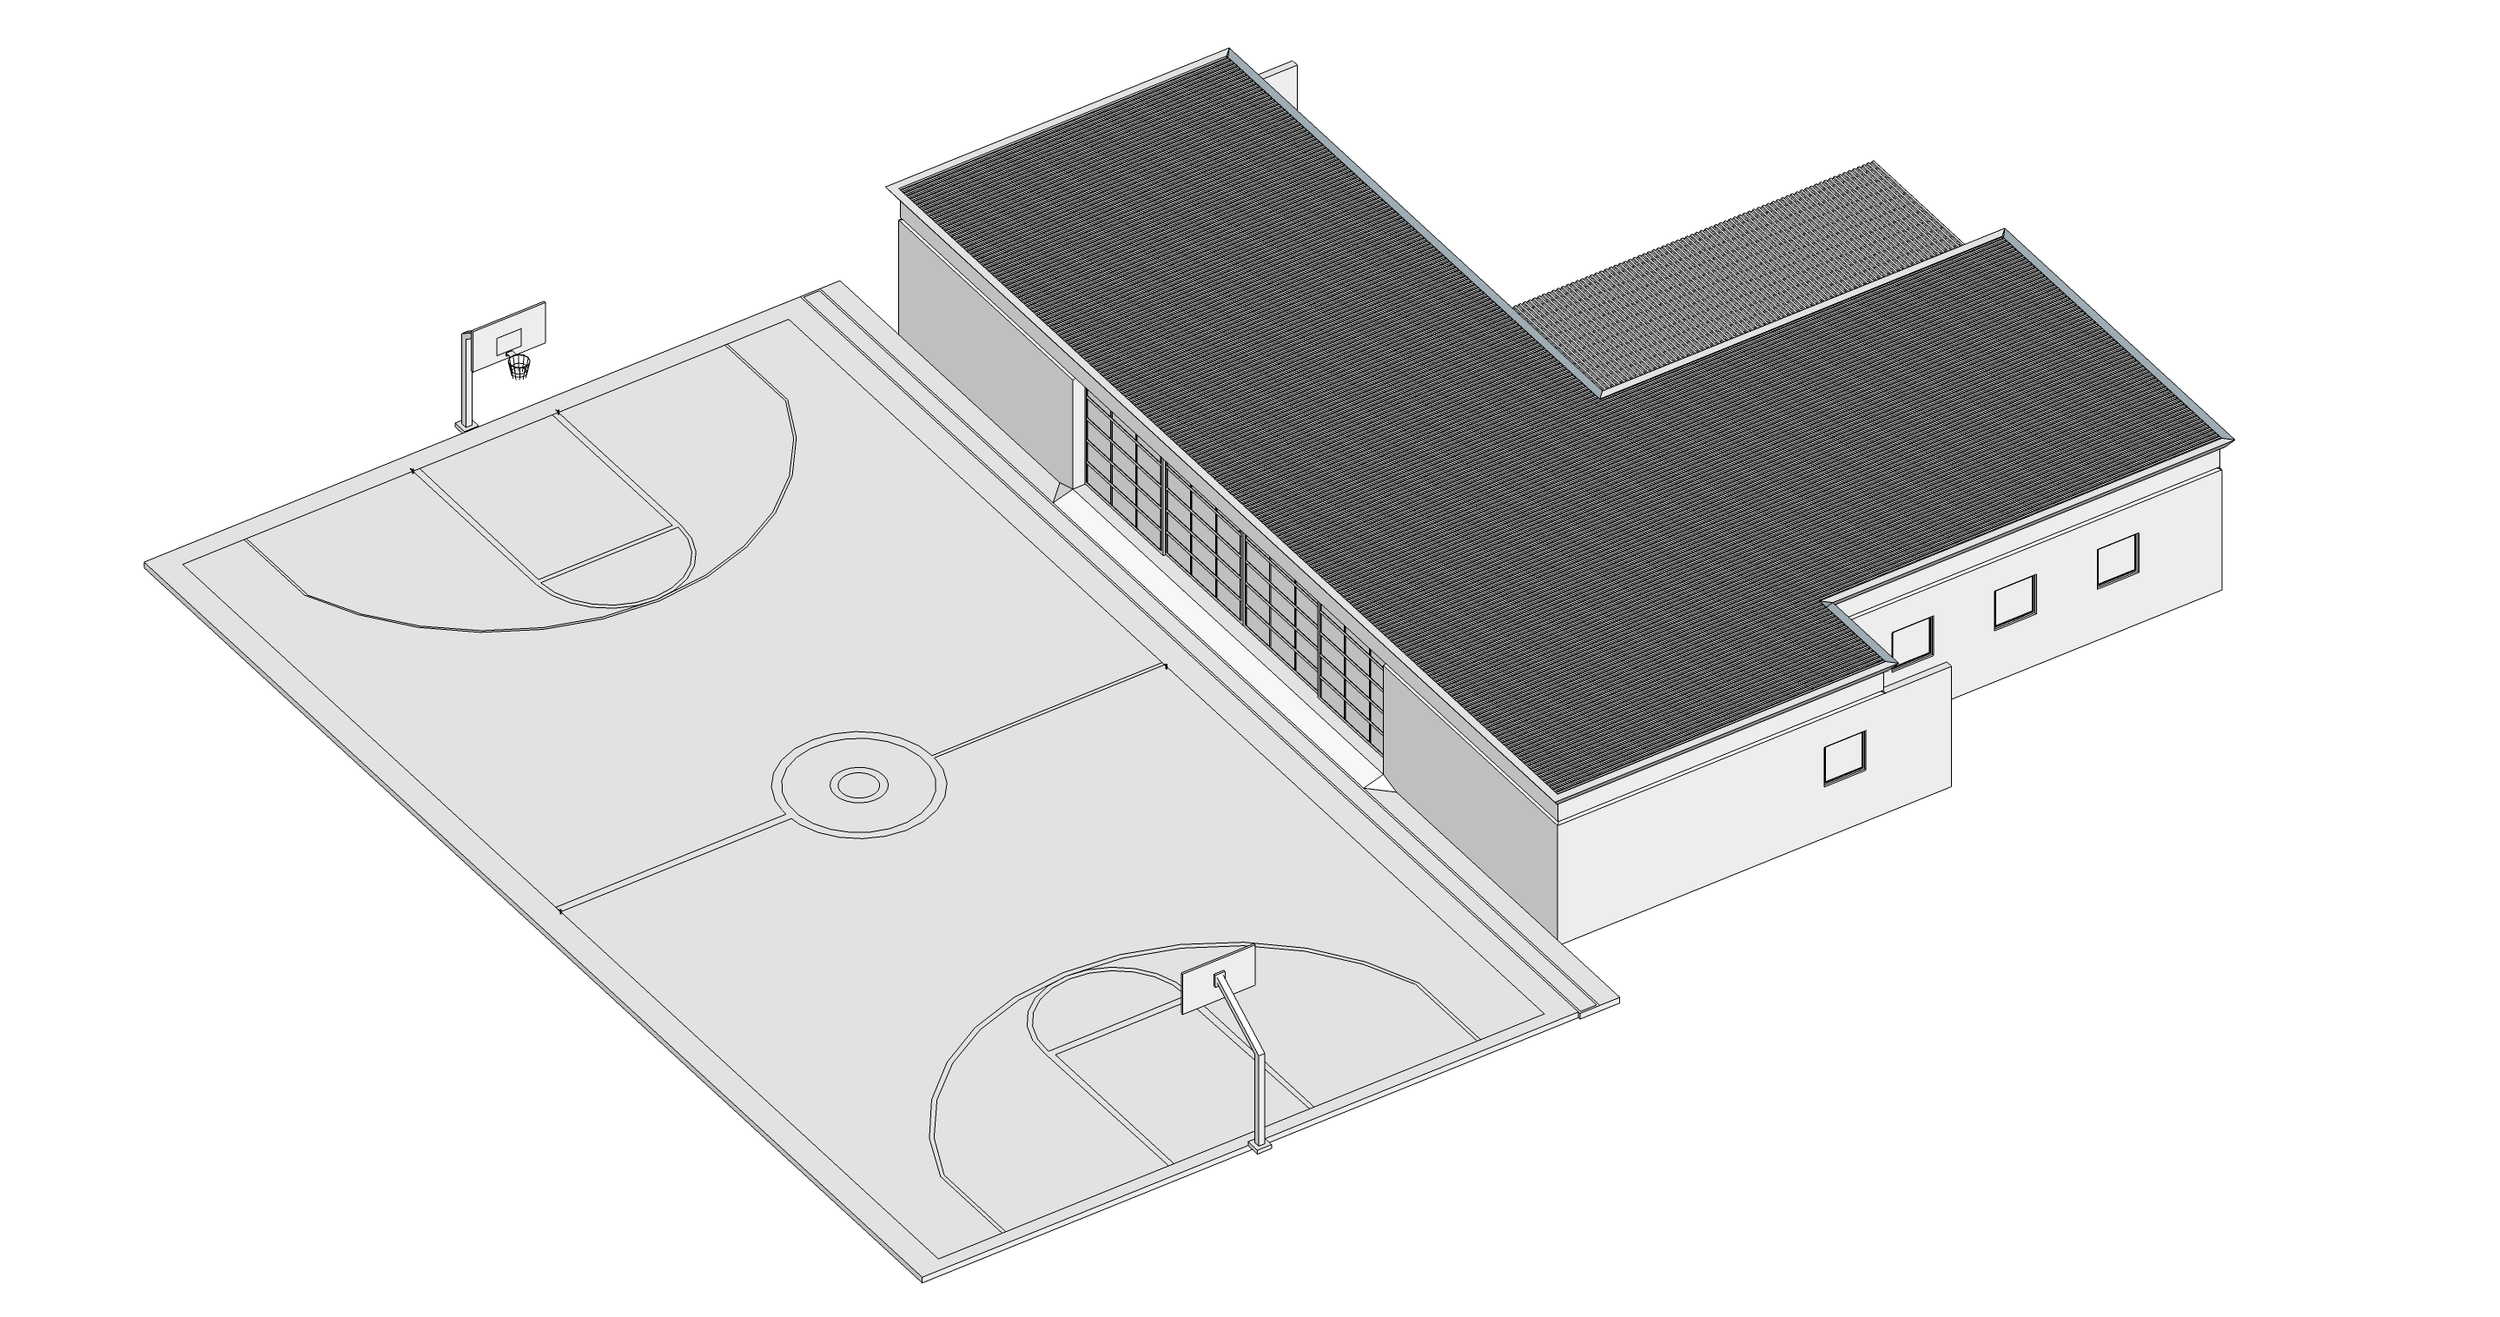 LFBL_Proposed Sketchup H.png